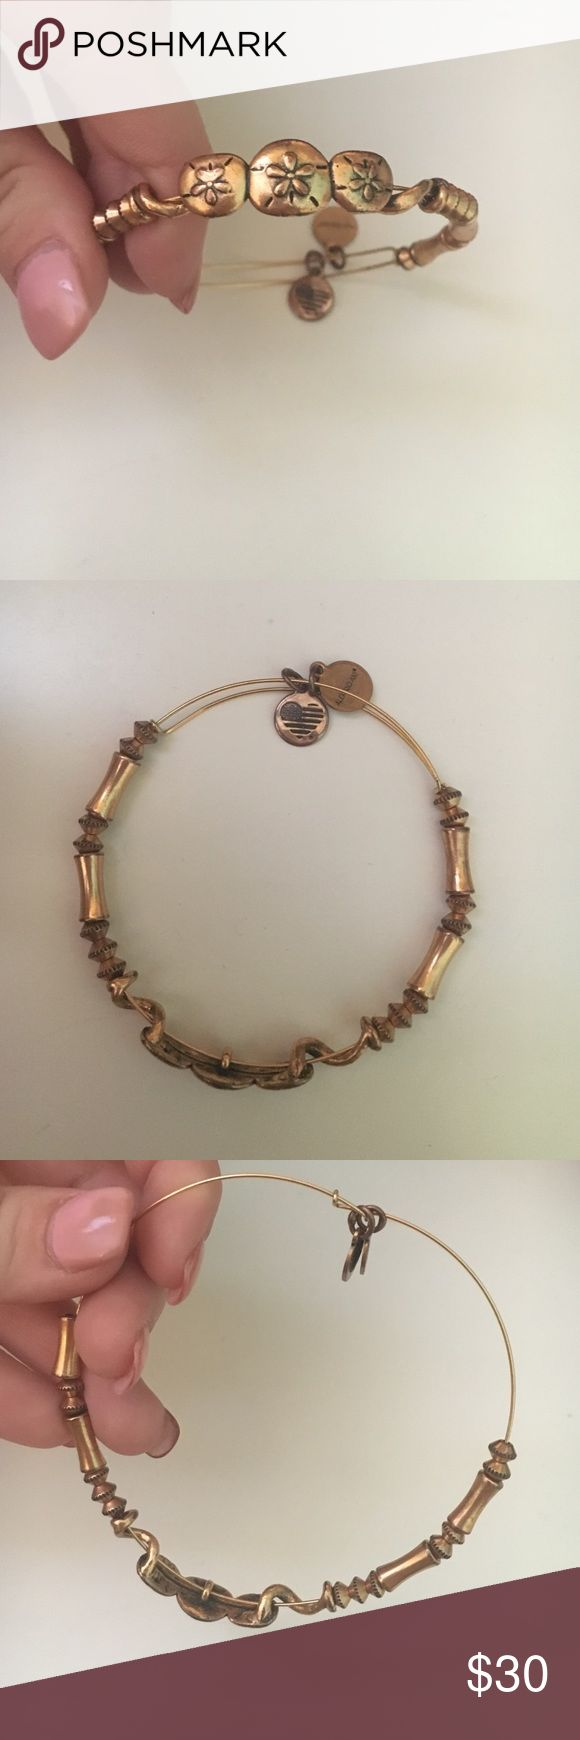 Sand dollar Alex and ani bangle, worn once Gold sand dollar Alex and ani bracelet, worn once nothing wrong with it. Paid full price Alex & Ani Jewelry Bracelets